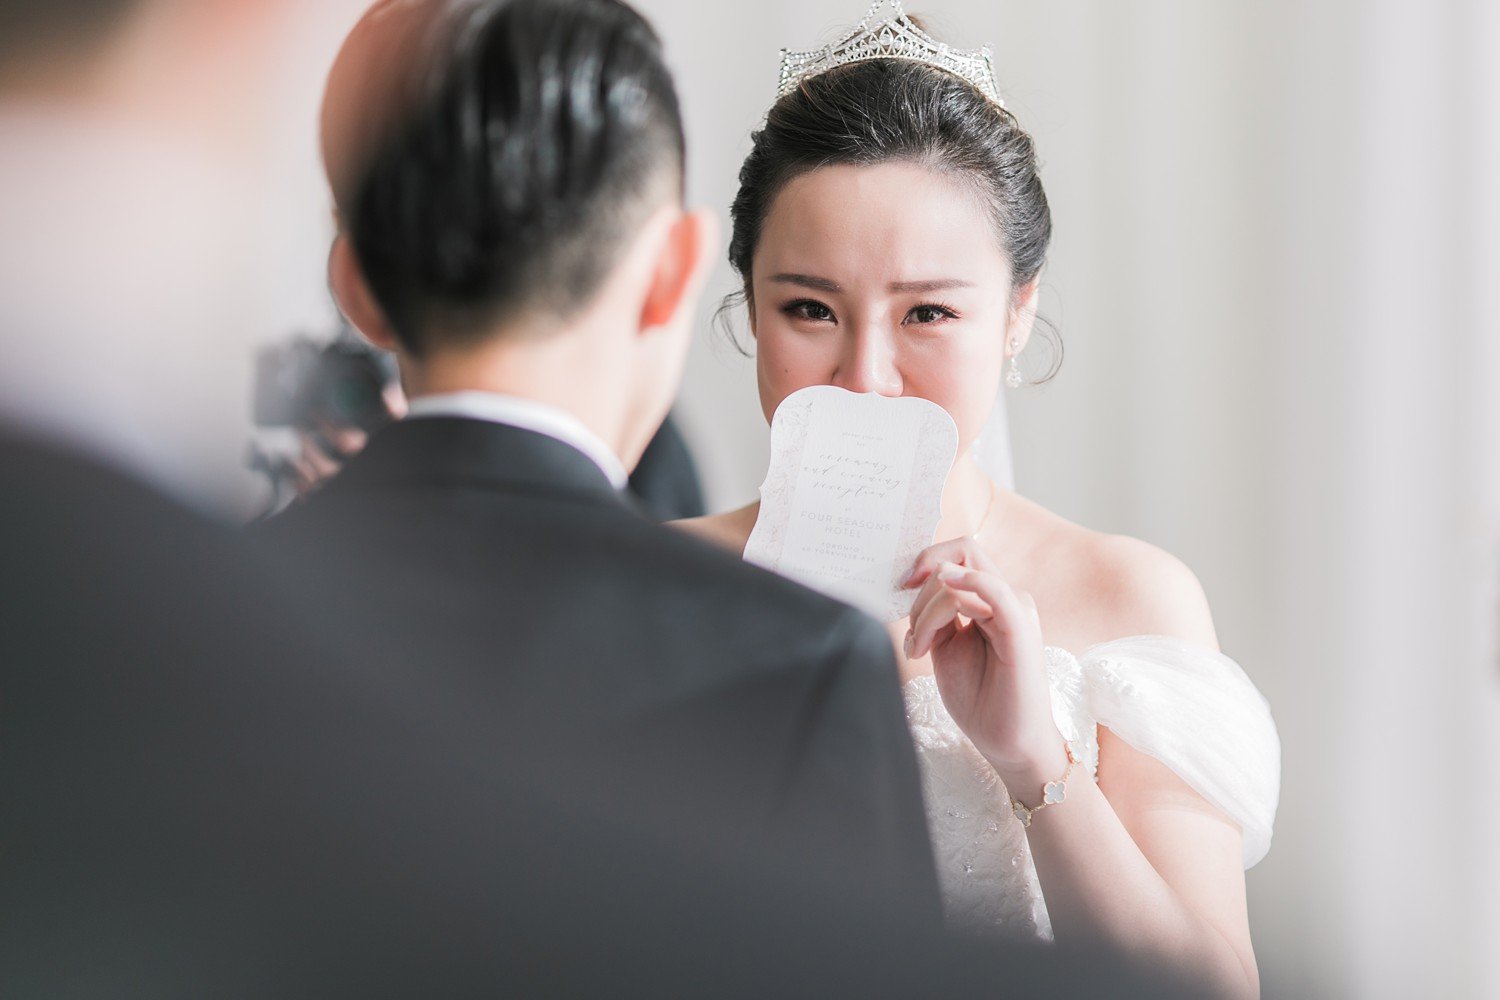 Tearing Bride Wedding Ceremony Vinci Room Luxury Yorkville Toronto Four Season Hotel Wedding Photos with Chinese Bride and Groom